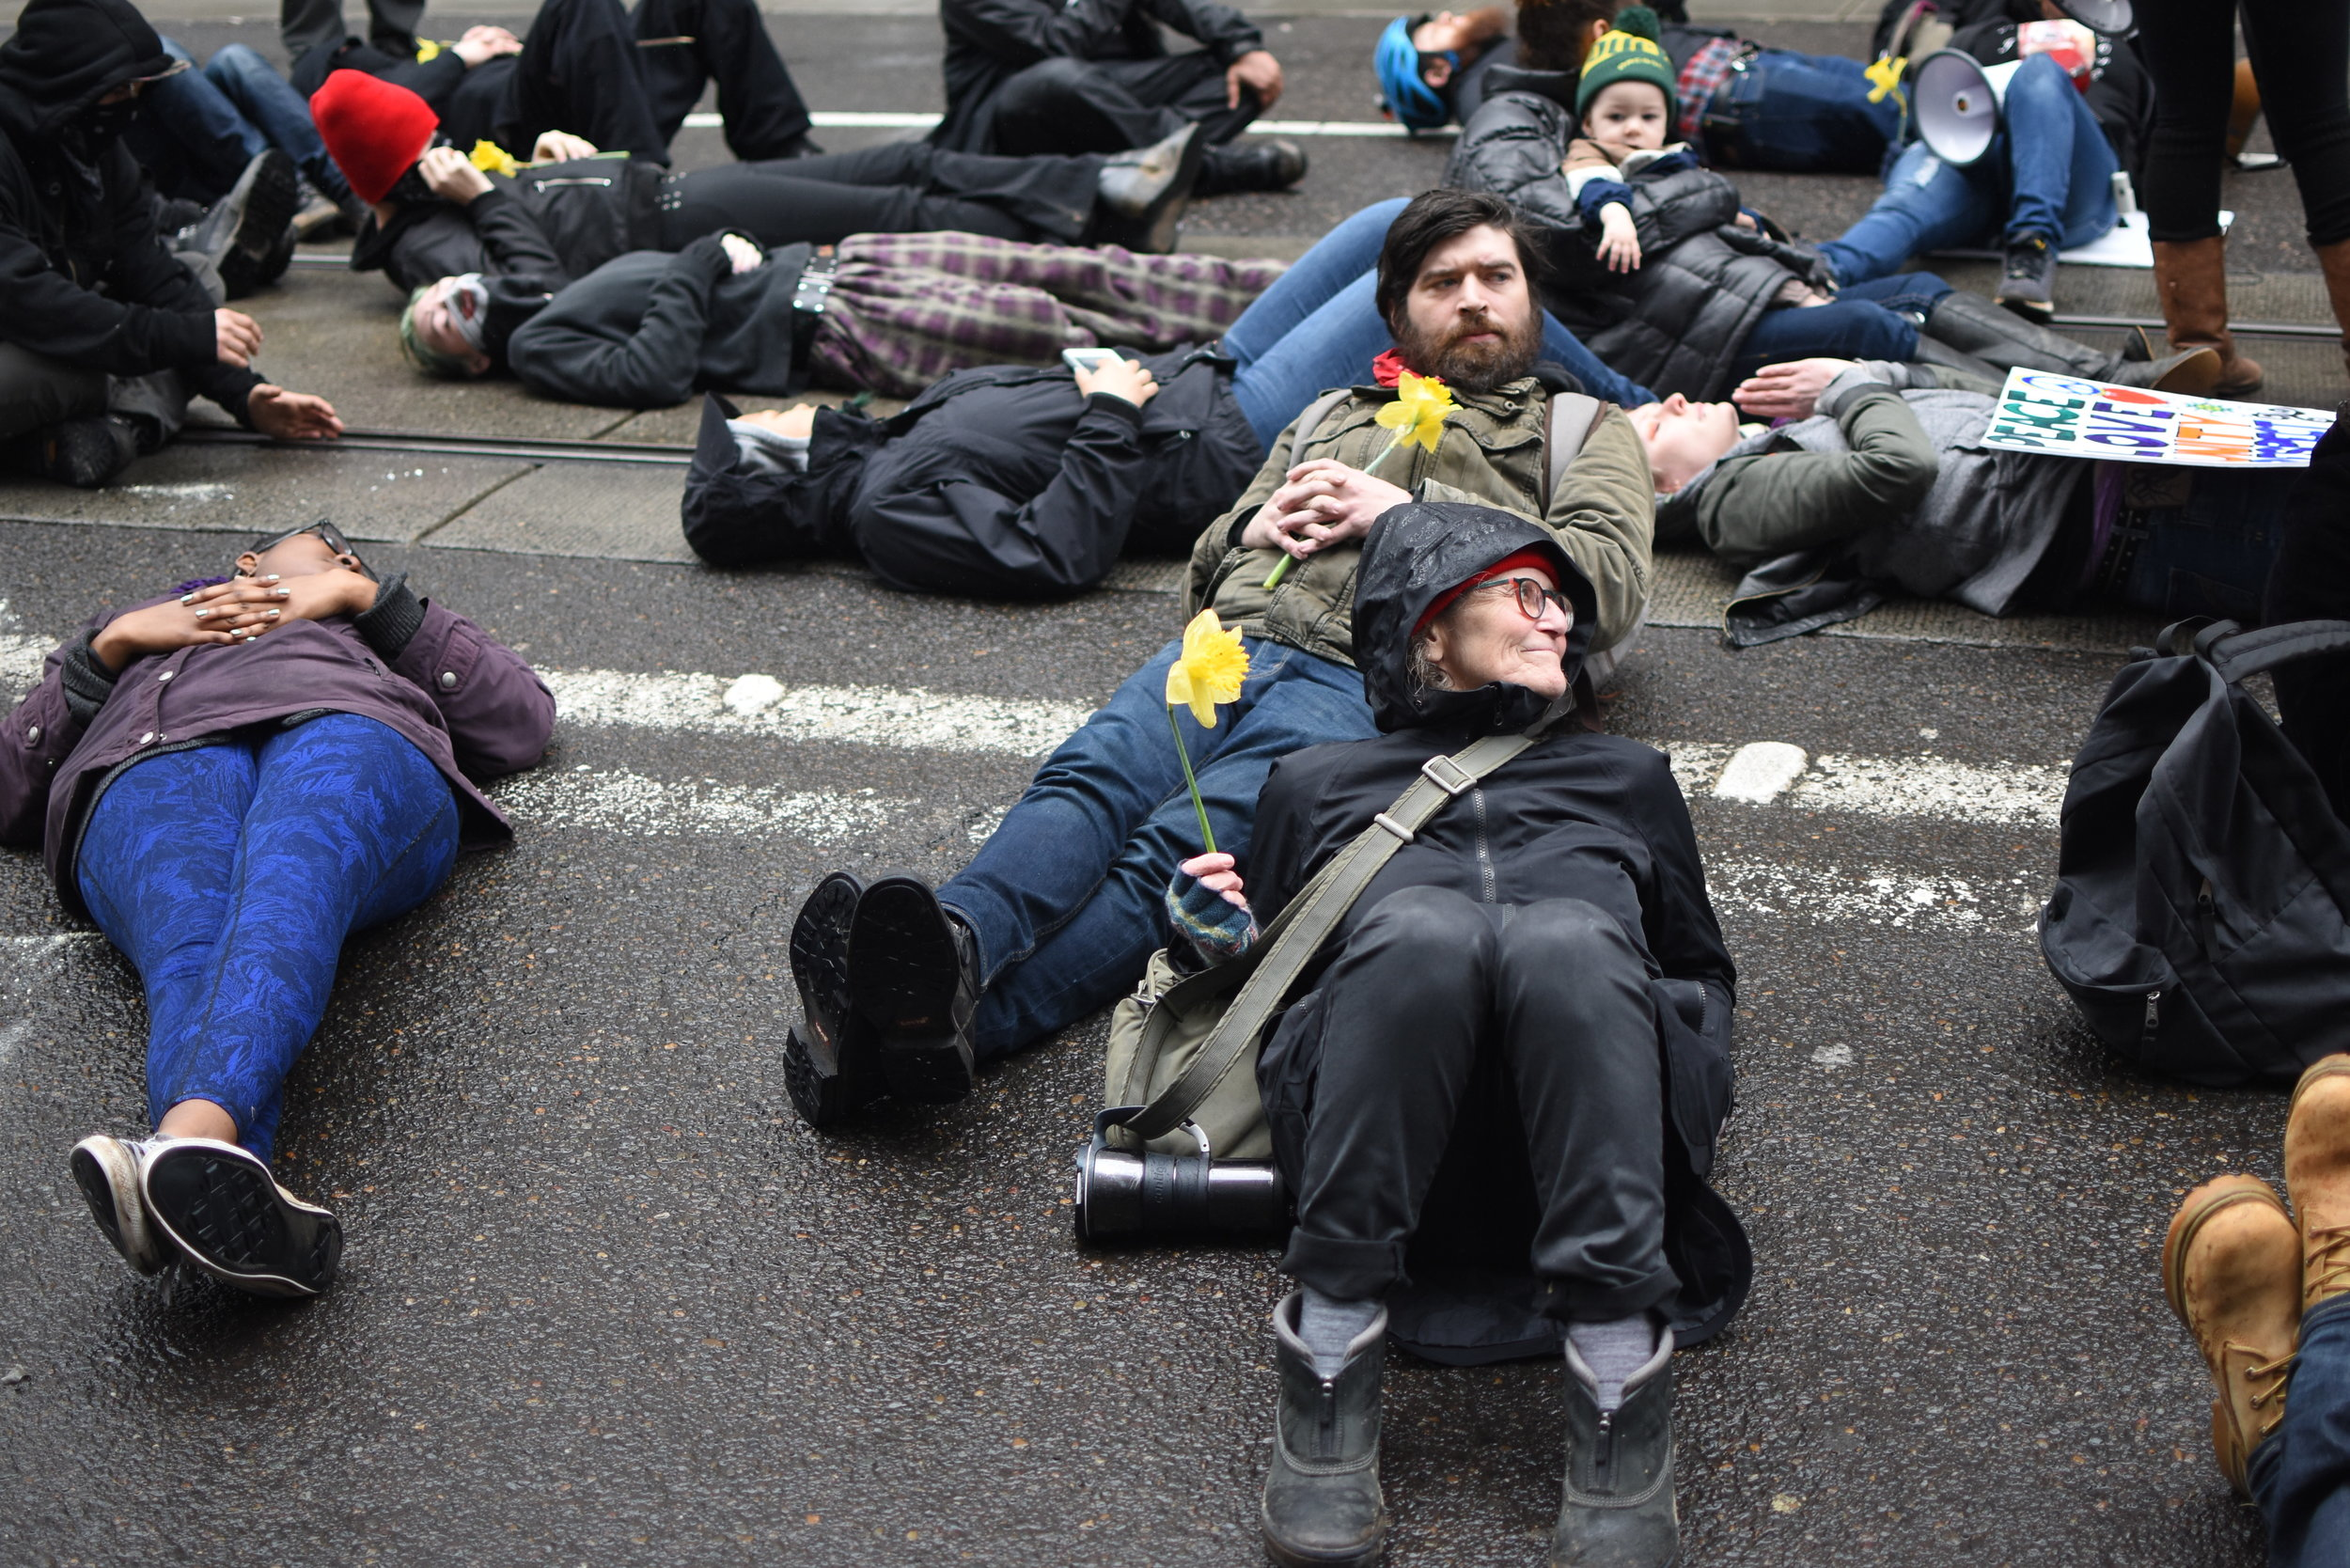 """Portland Mercury - """"Six Arrested Downtown Wednesday While Protesting Portland Police"""""""